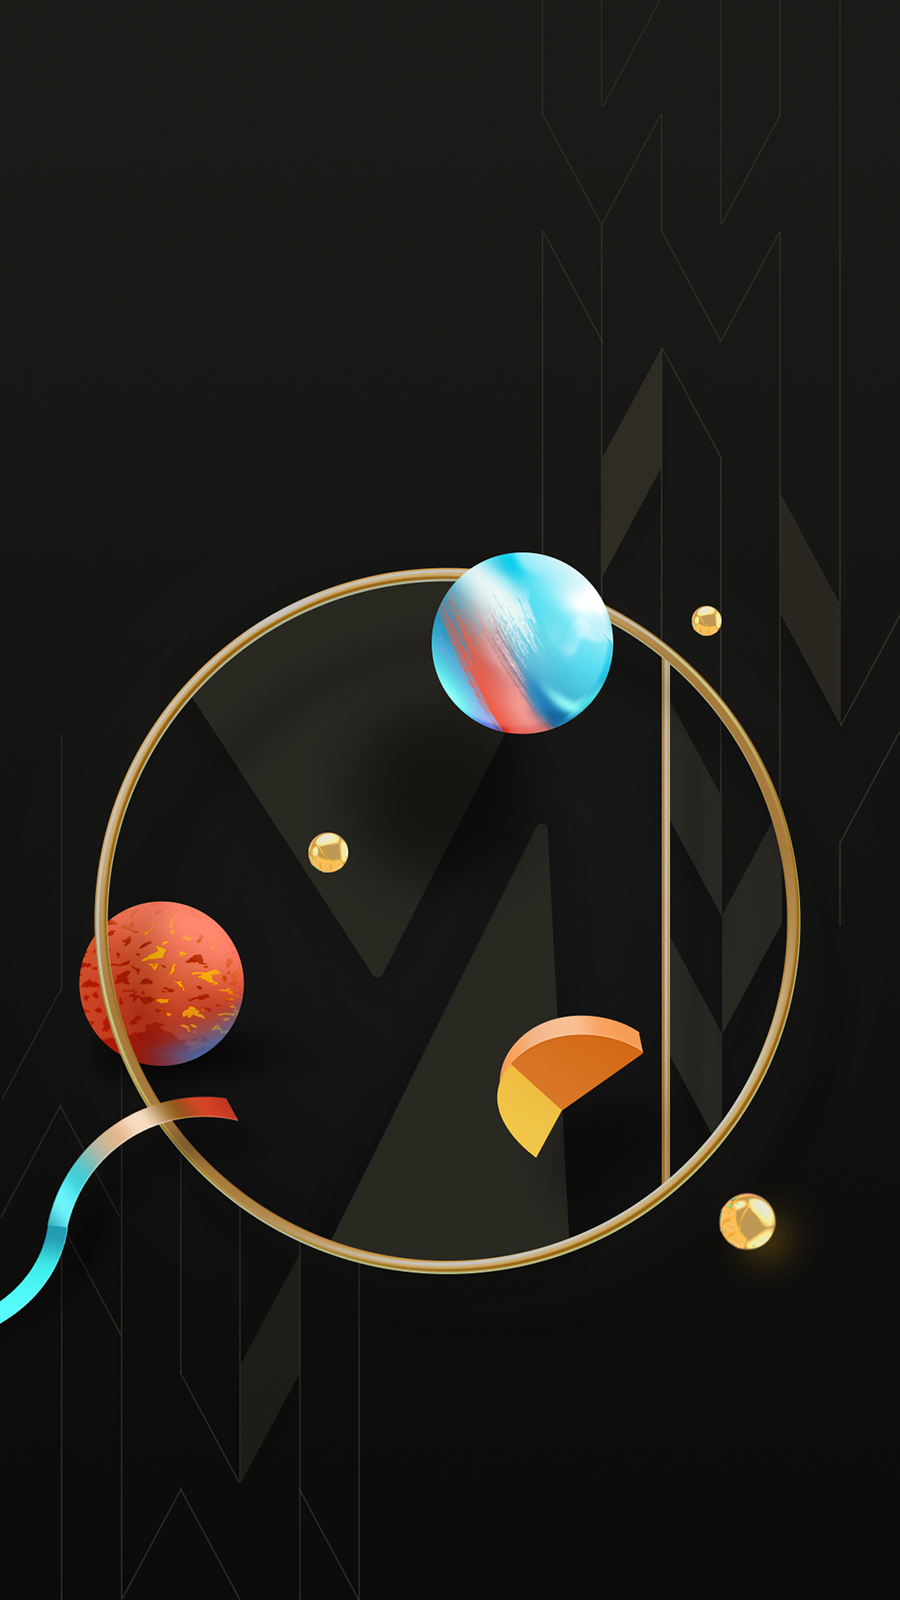 Art, Planet, Space Wallpapers Free Download For Mobile Device